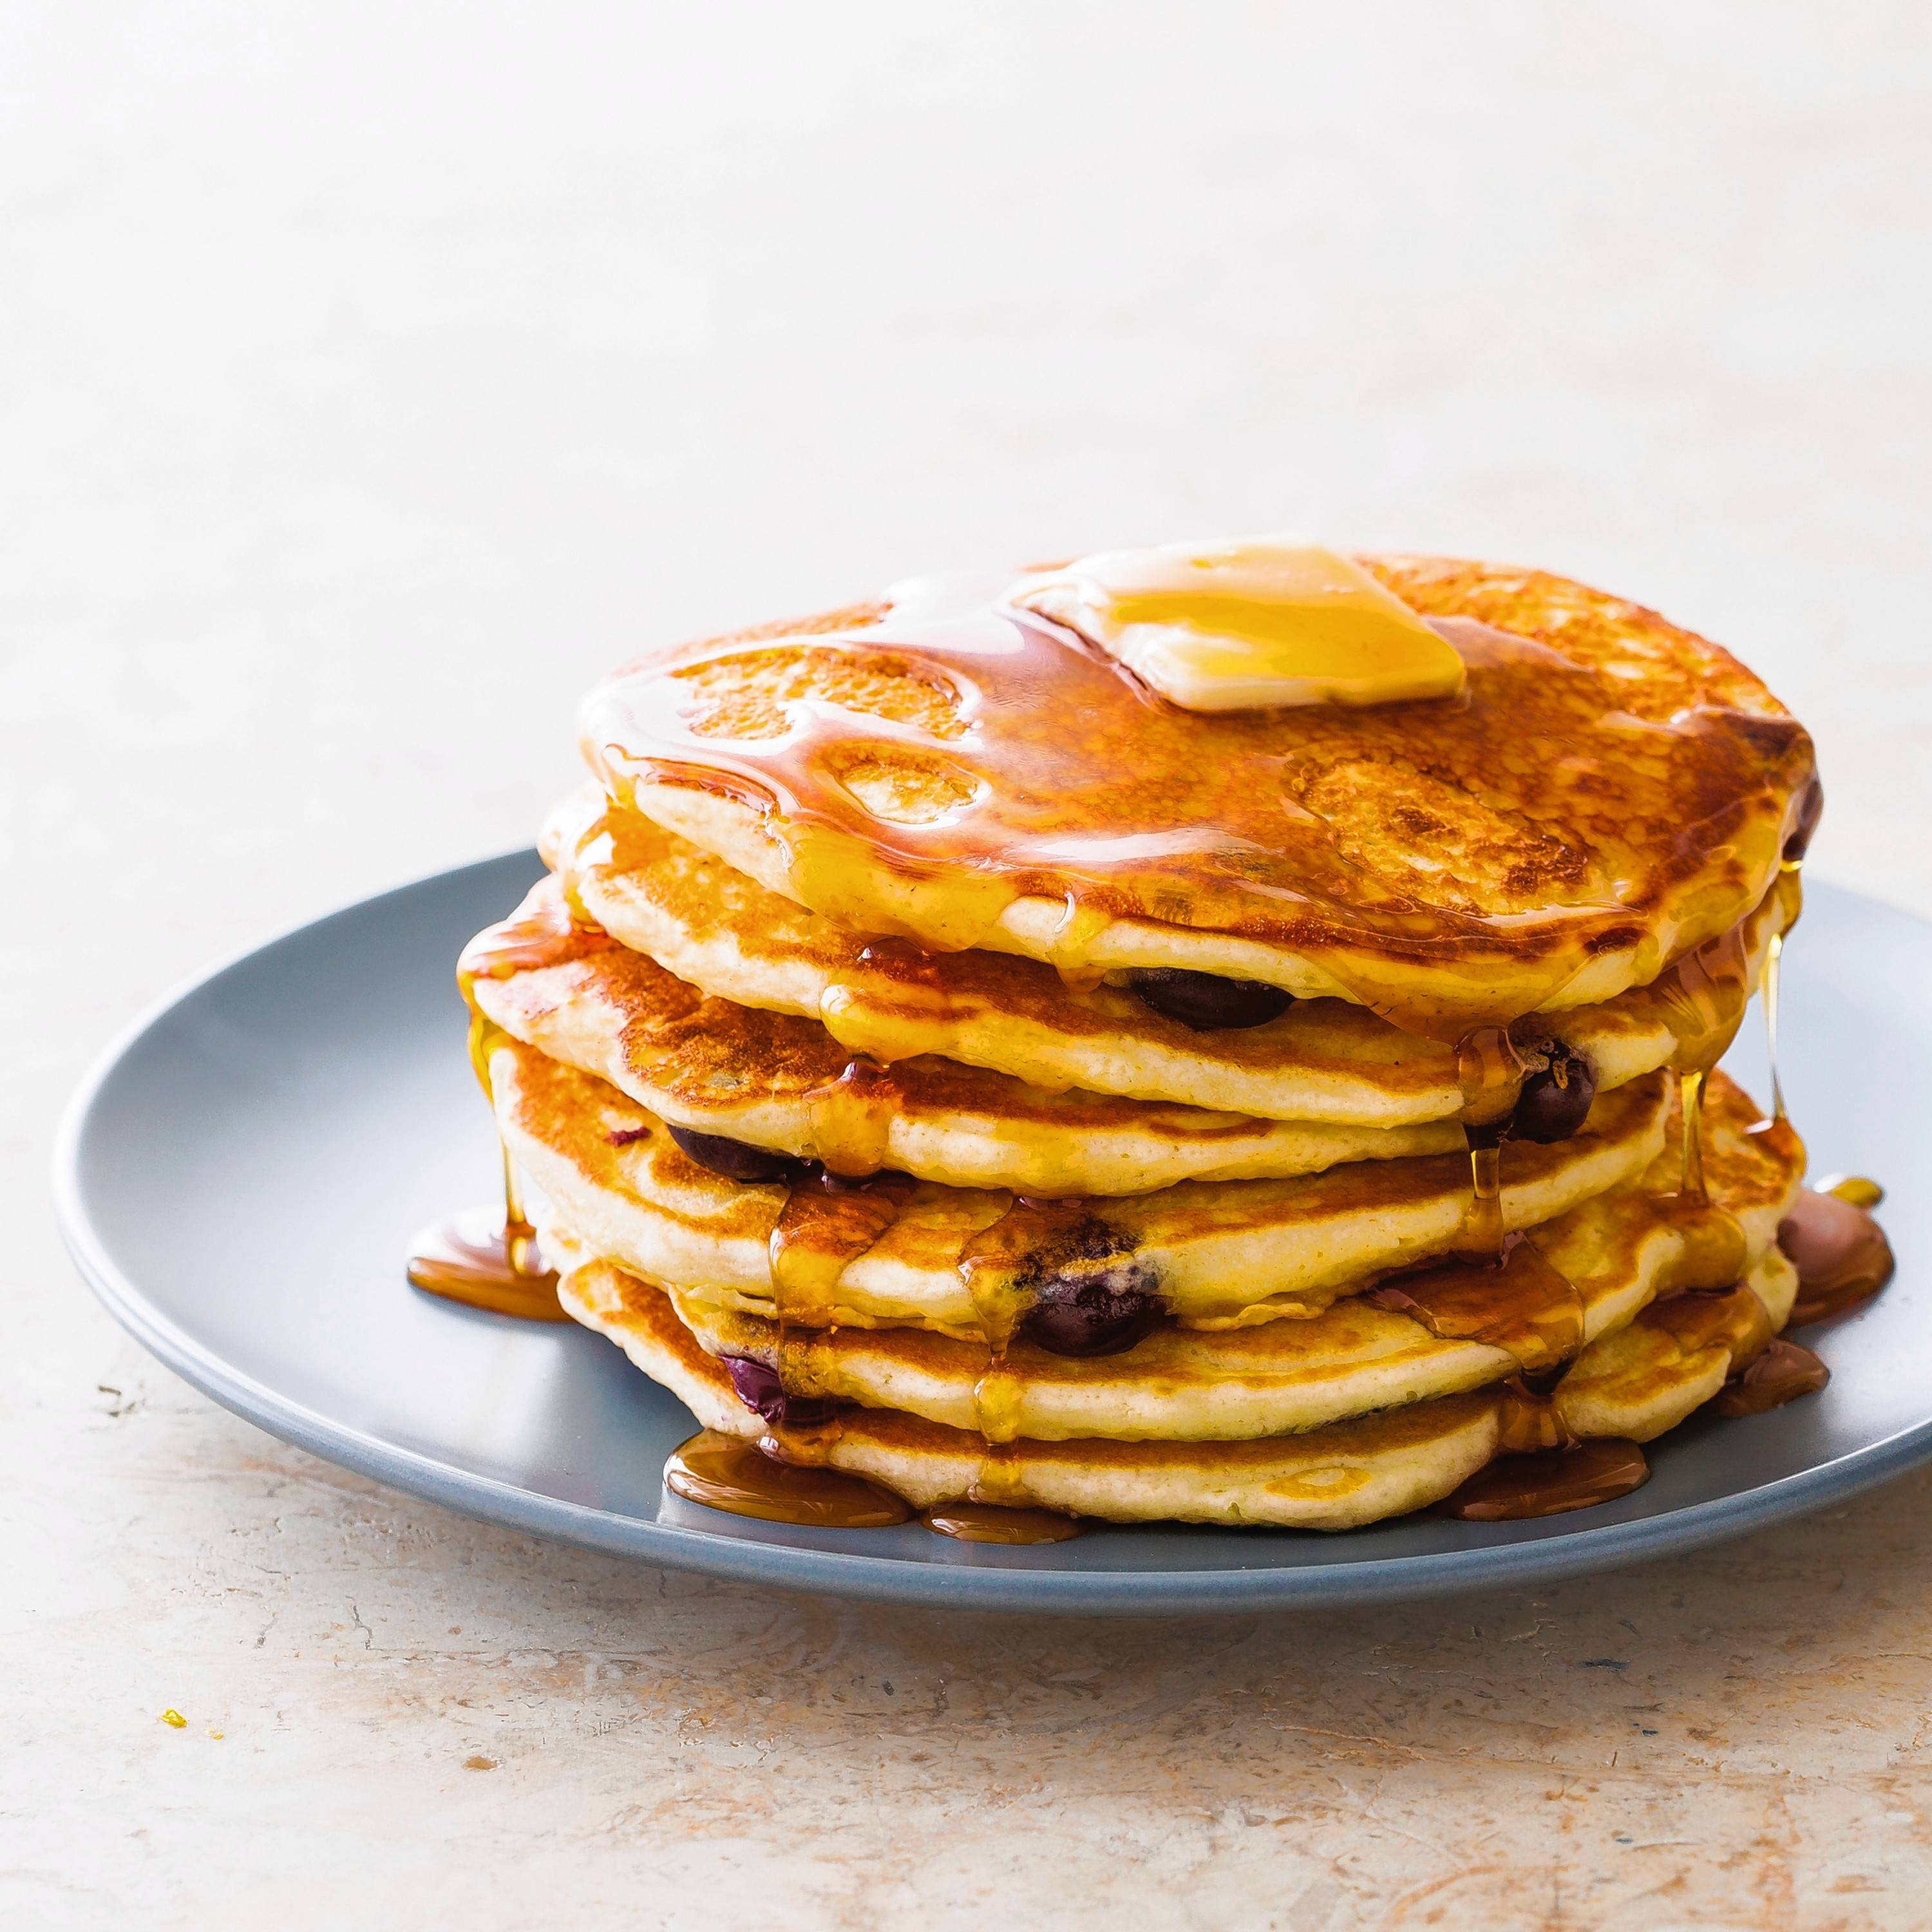 Start a classic brunch with a stack of airy, tangy pancakes